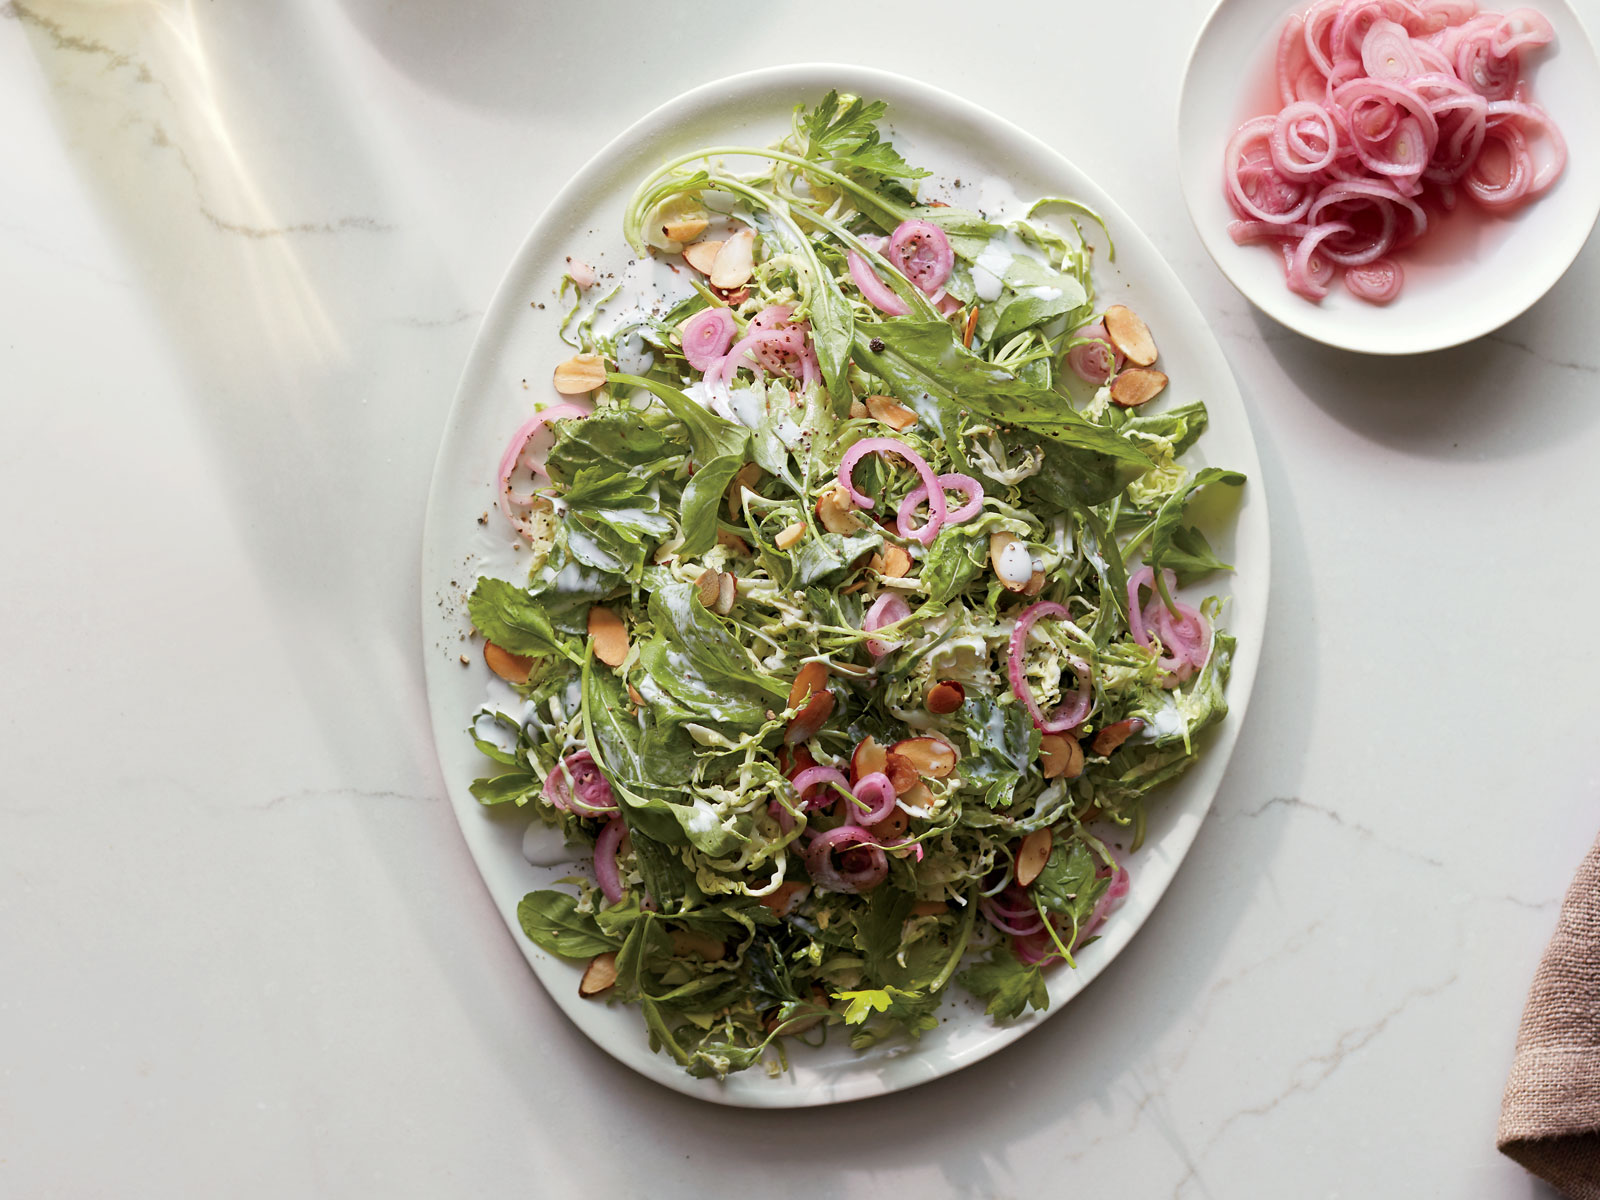 Brussels Sprouts and Arugula Salad with Buttermilk Dressing